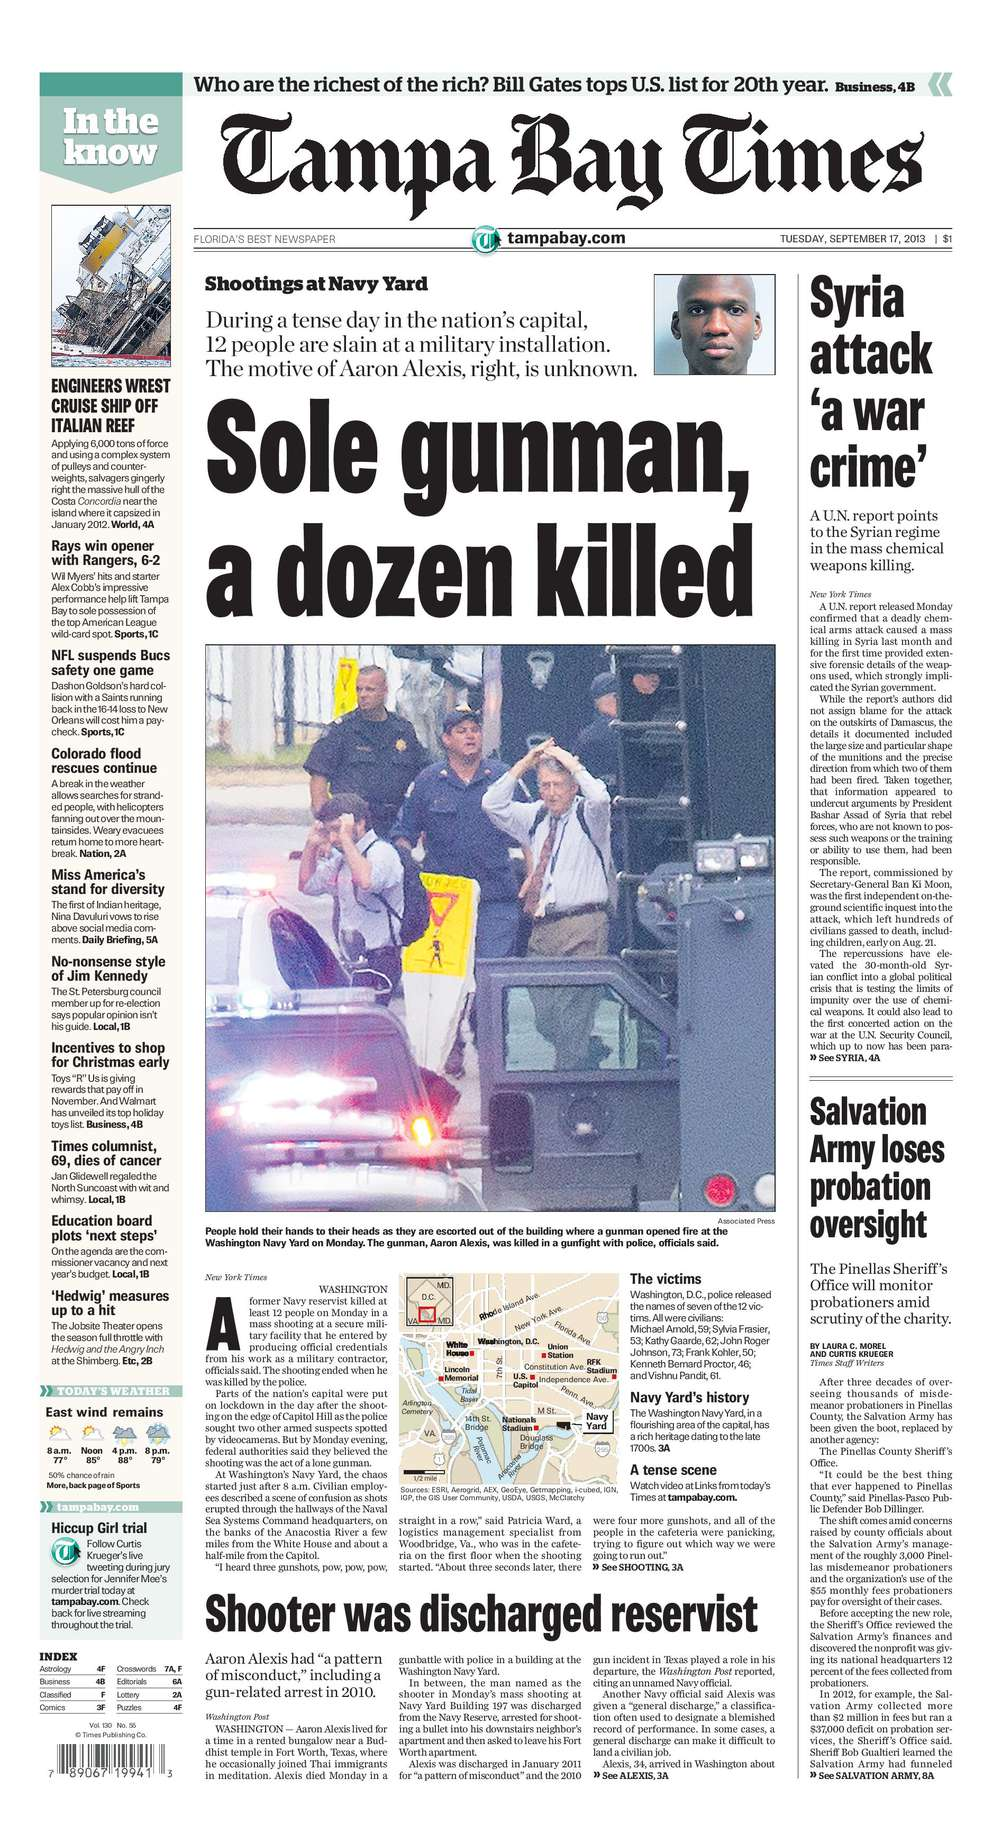 Sept. 16, 2003: 12 killed. A civilian contractor entered the Navy Yard military facility in Washington D.C. and killed 12 people before police killed him.